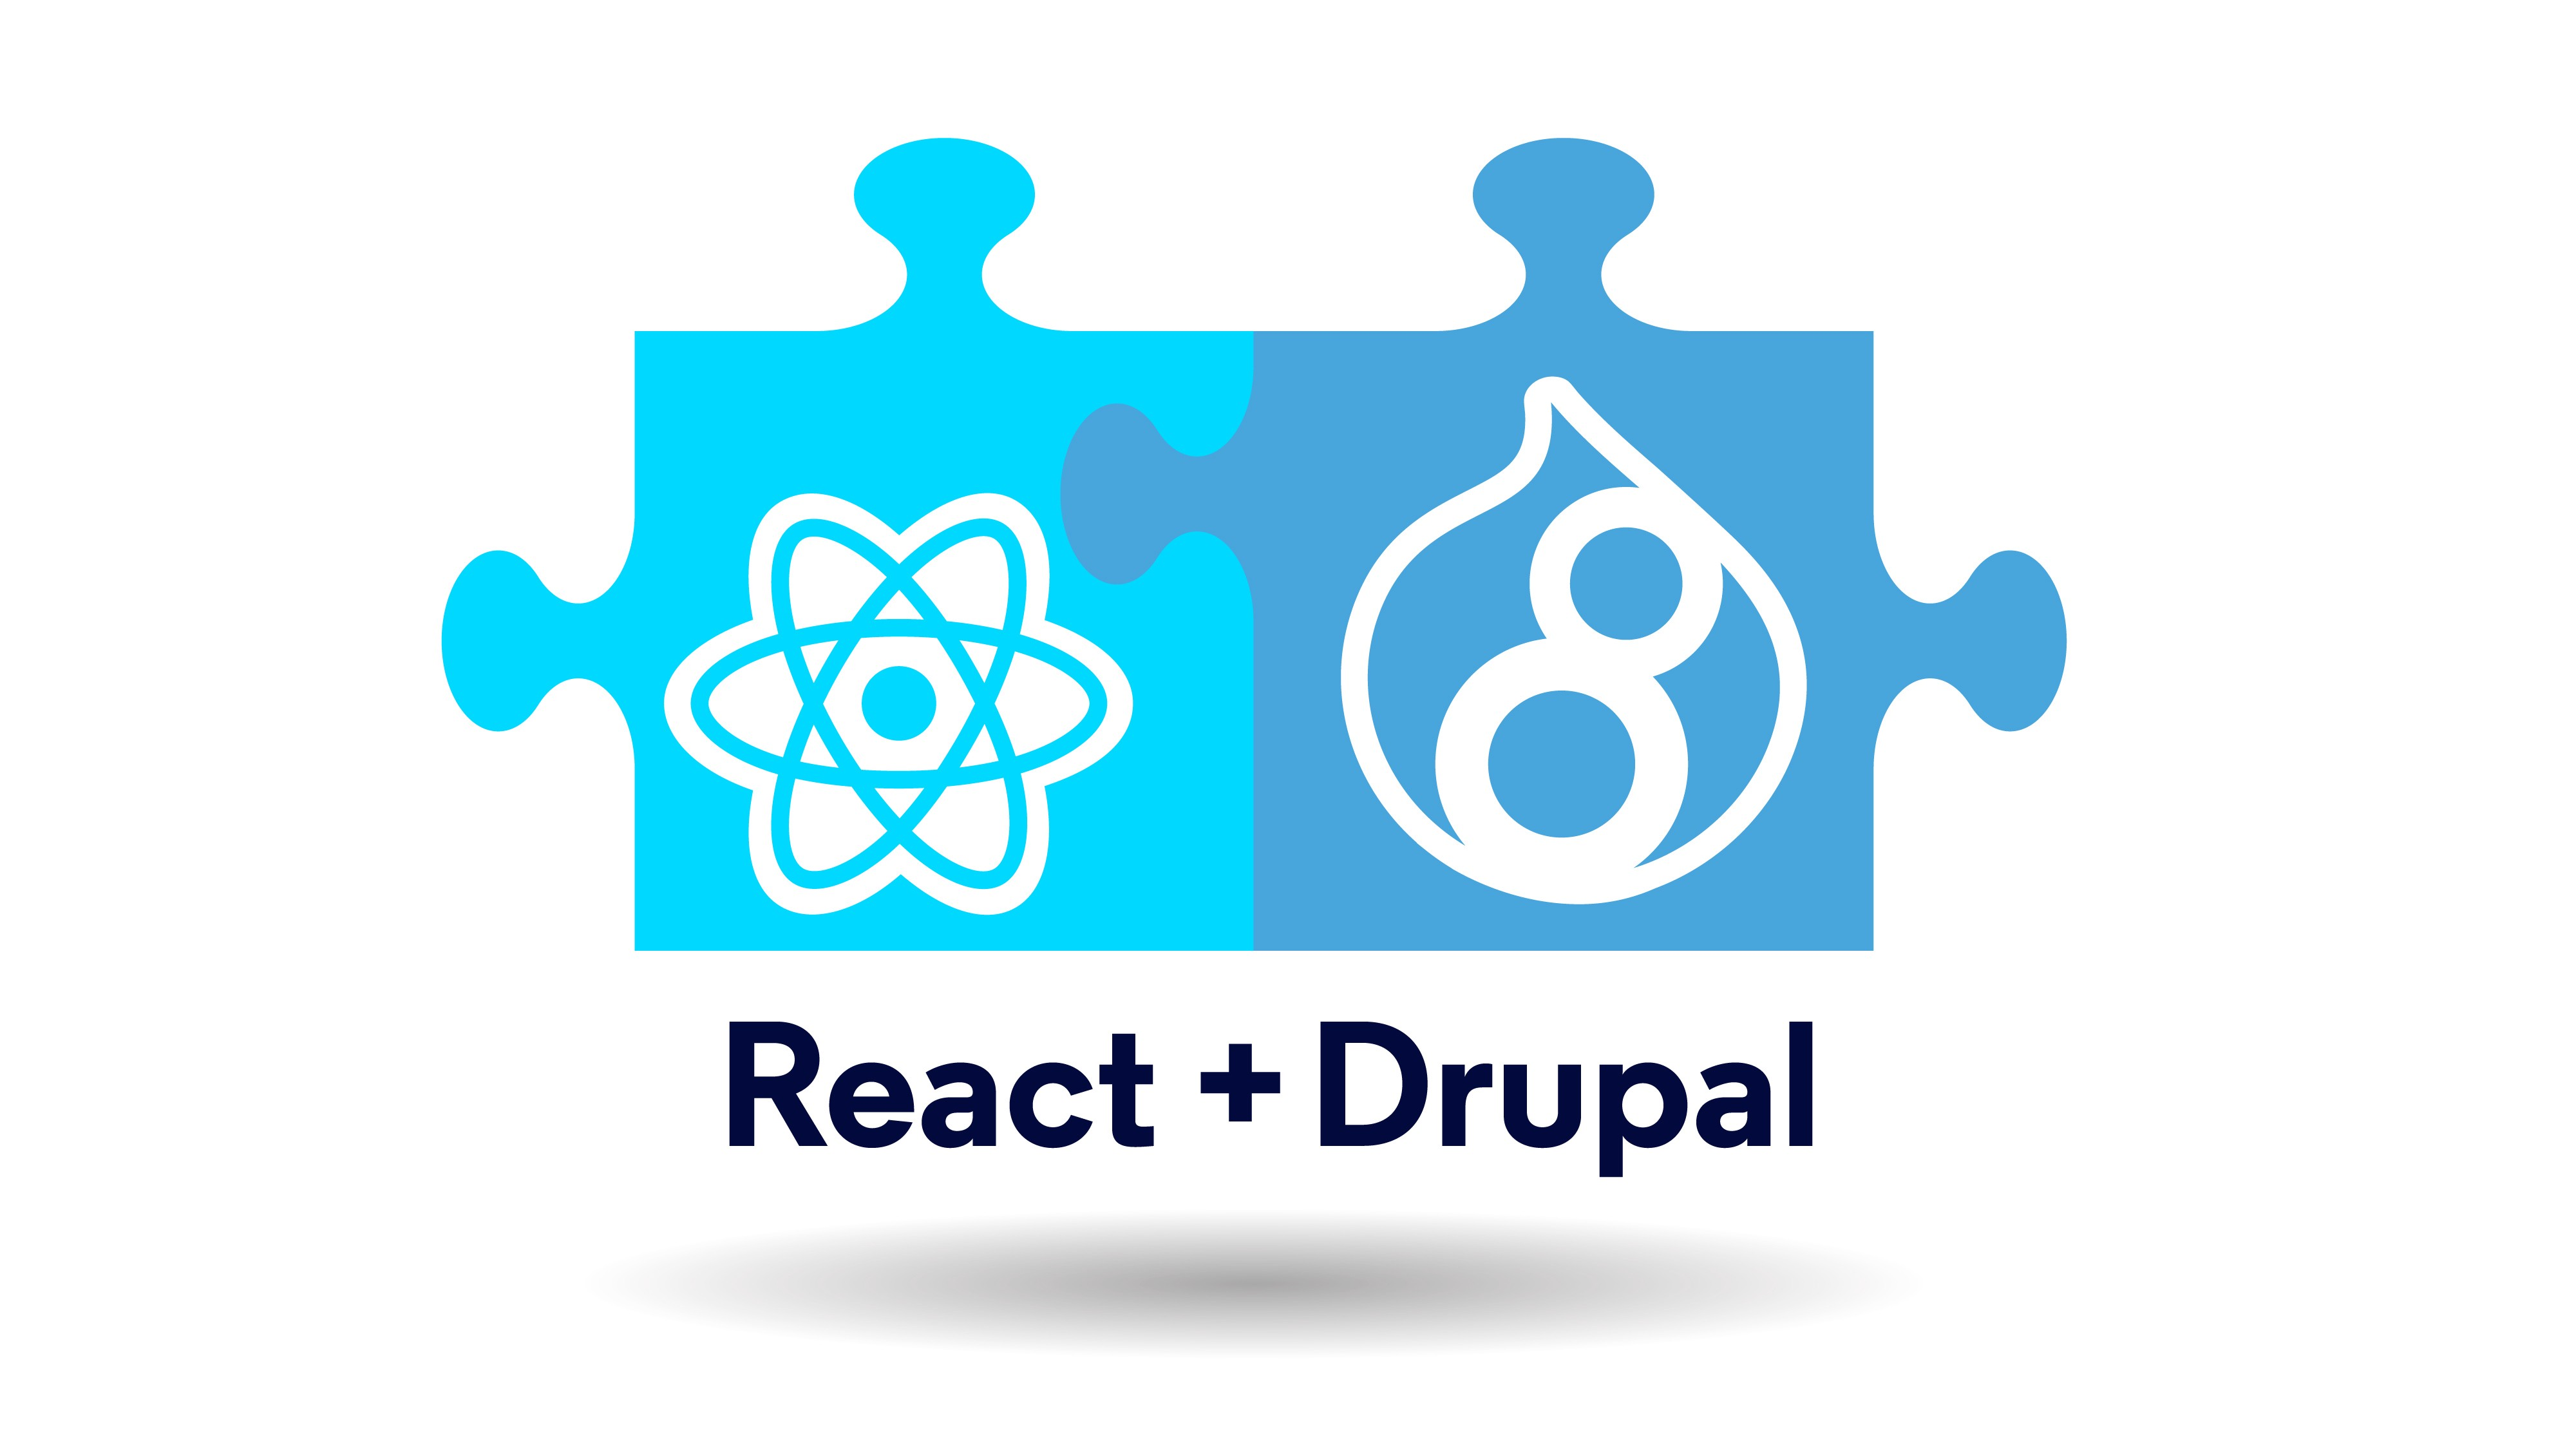 Getting started with ReactJS & Drupal (Fully-Decoupled)